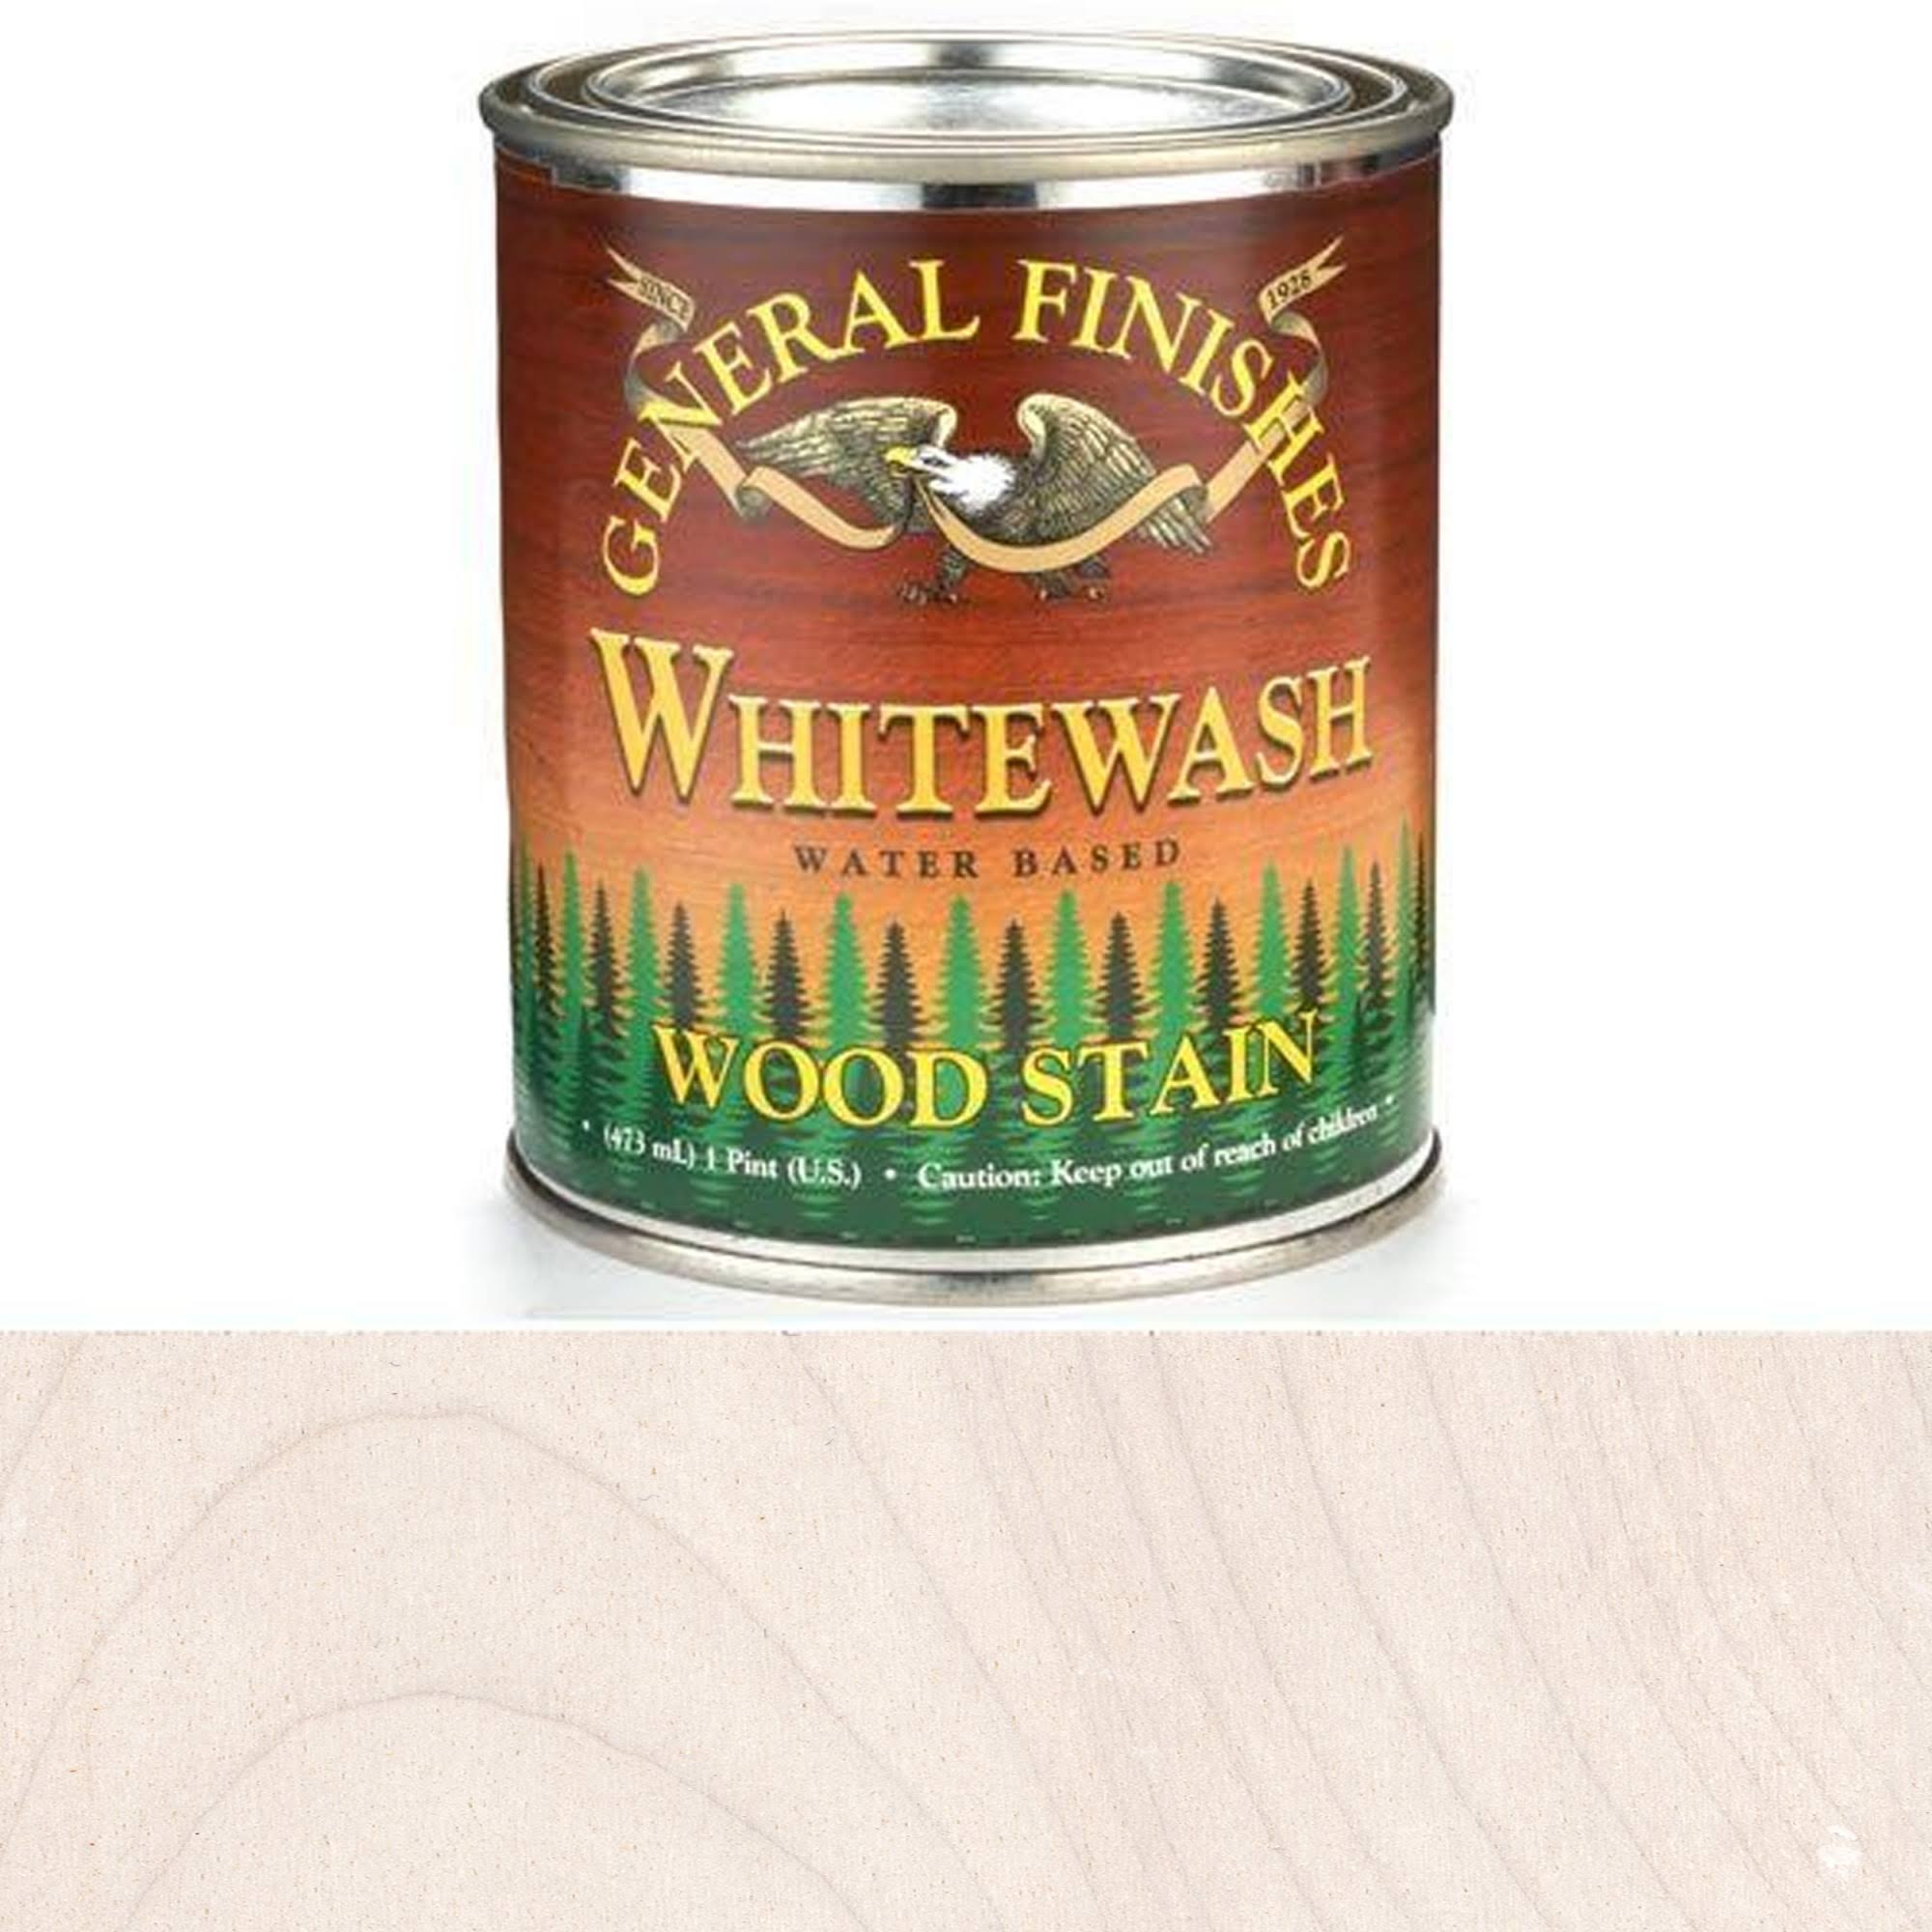 General Finishes Water Based Wood Whitewash Stain, Pint